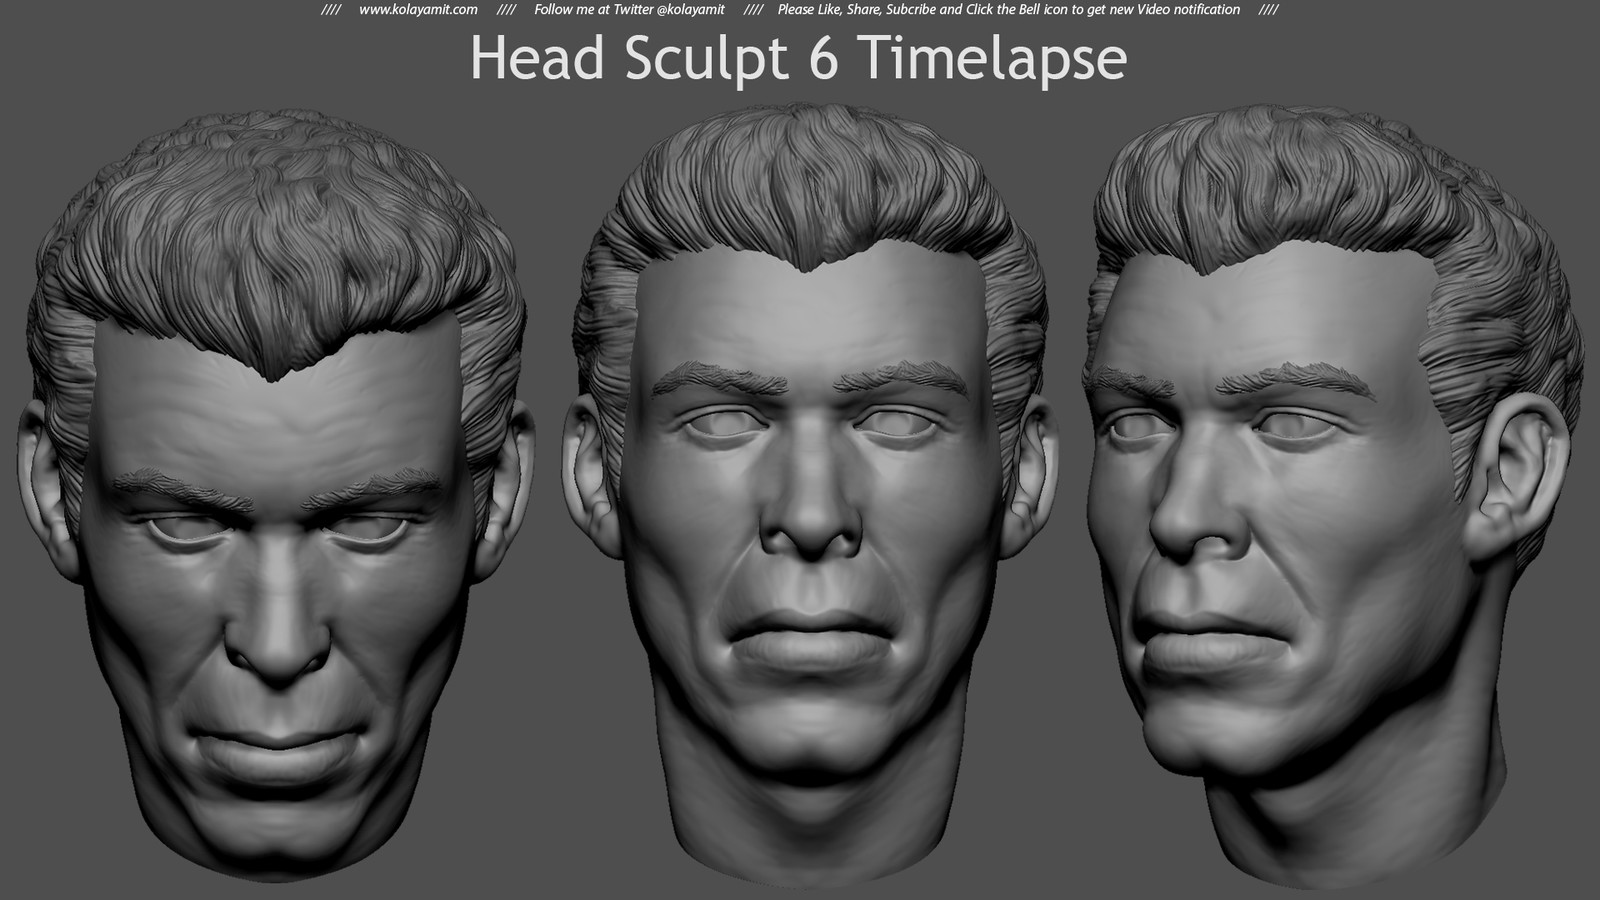 Head Sculpt 6 Timelapse